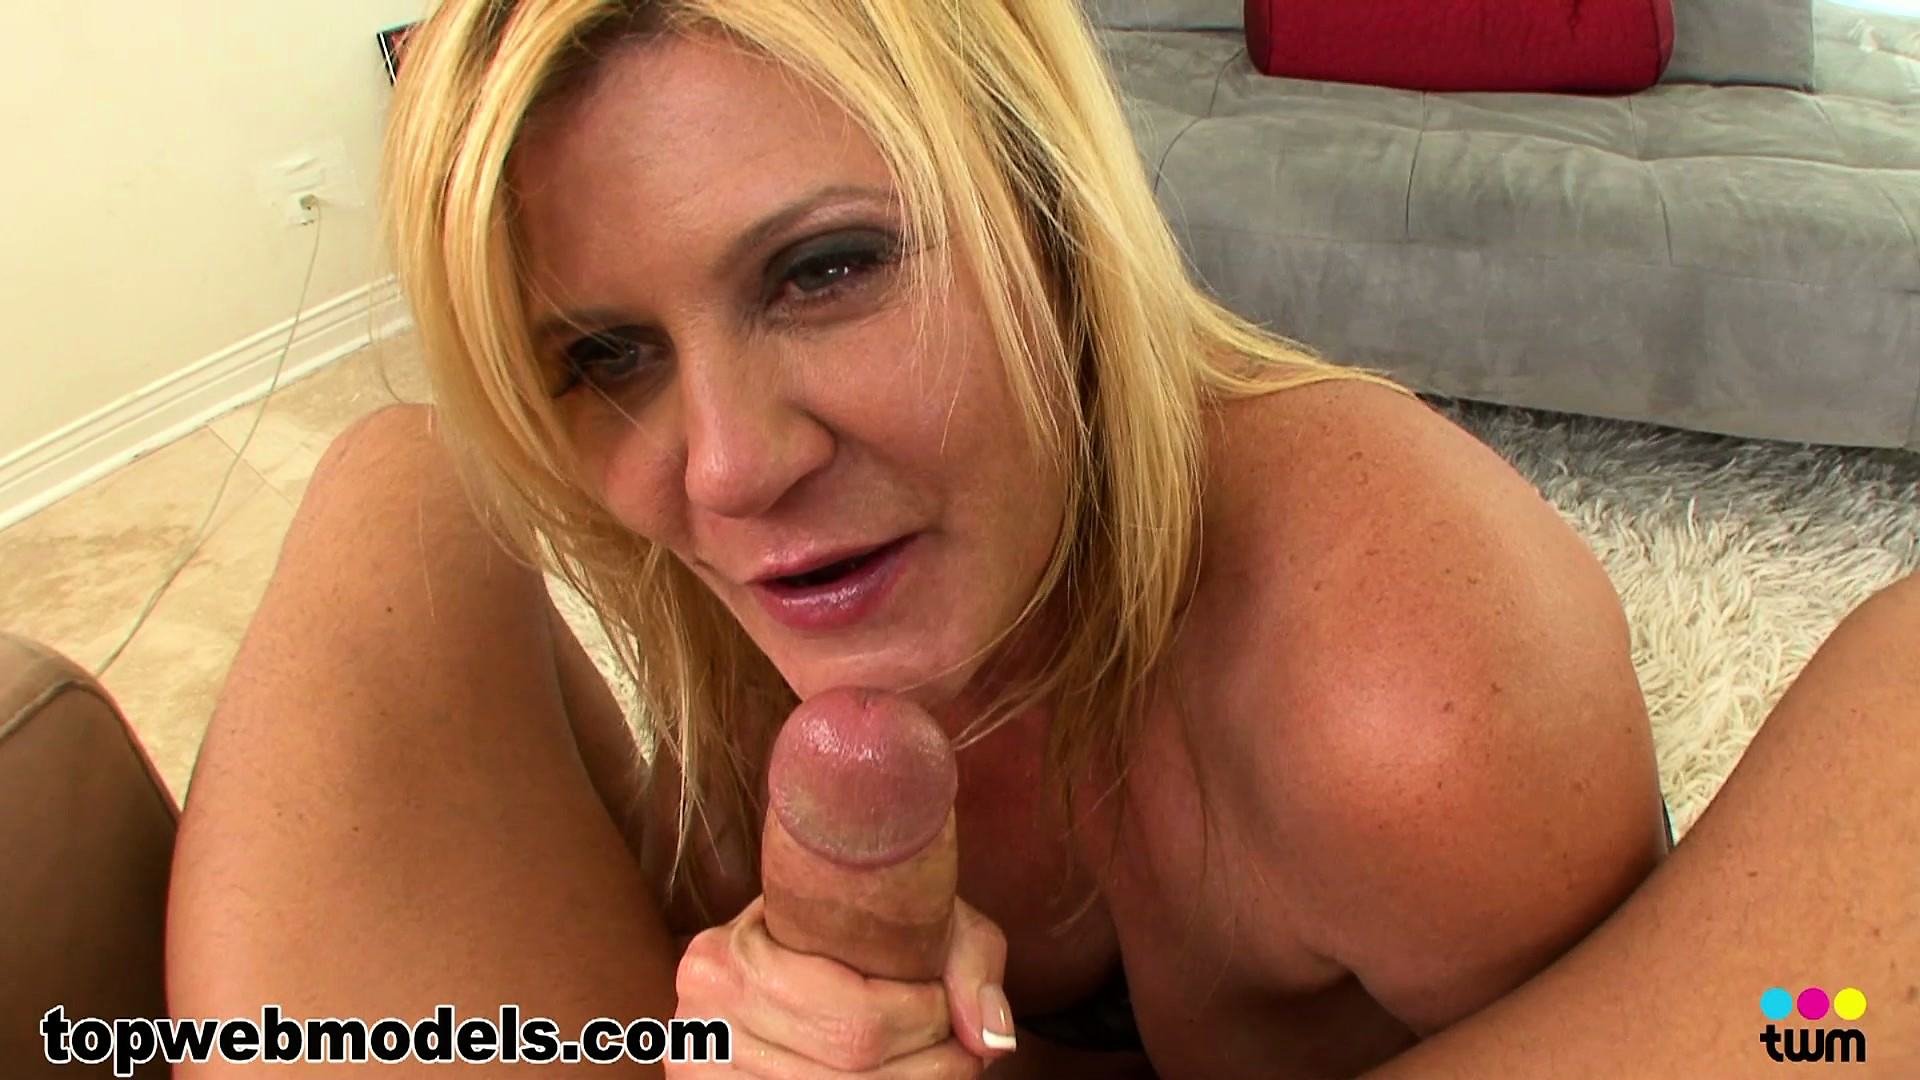 Porn Tube of Ginger Lynn Takes His Cock In Her Mouth While Fondling Her Tits